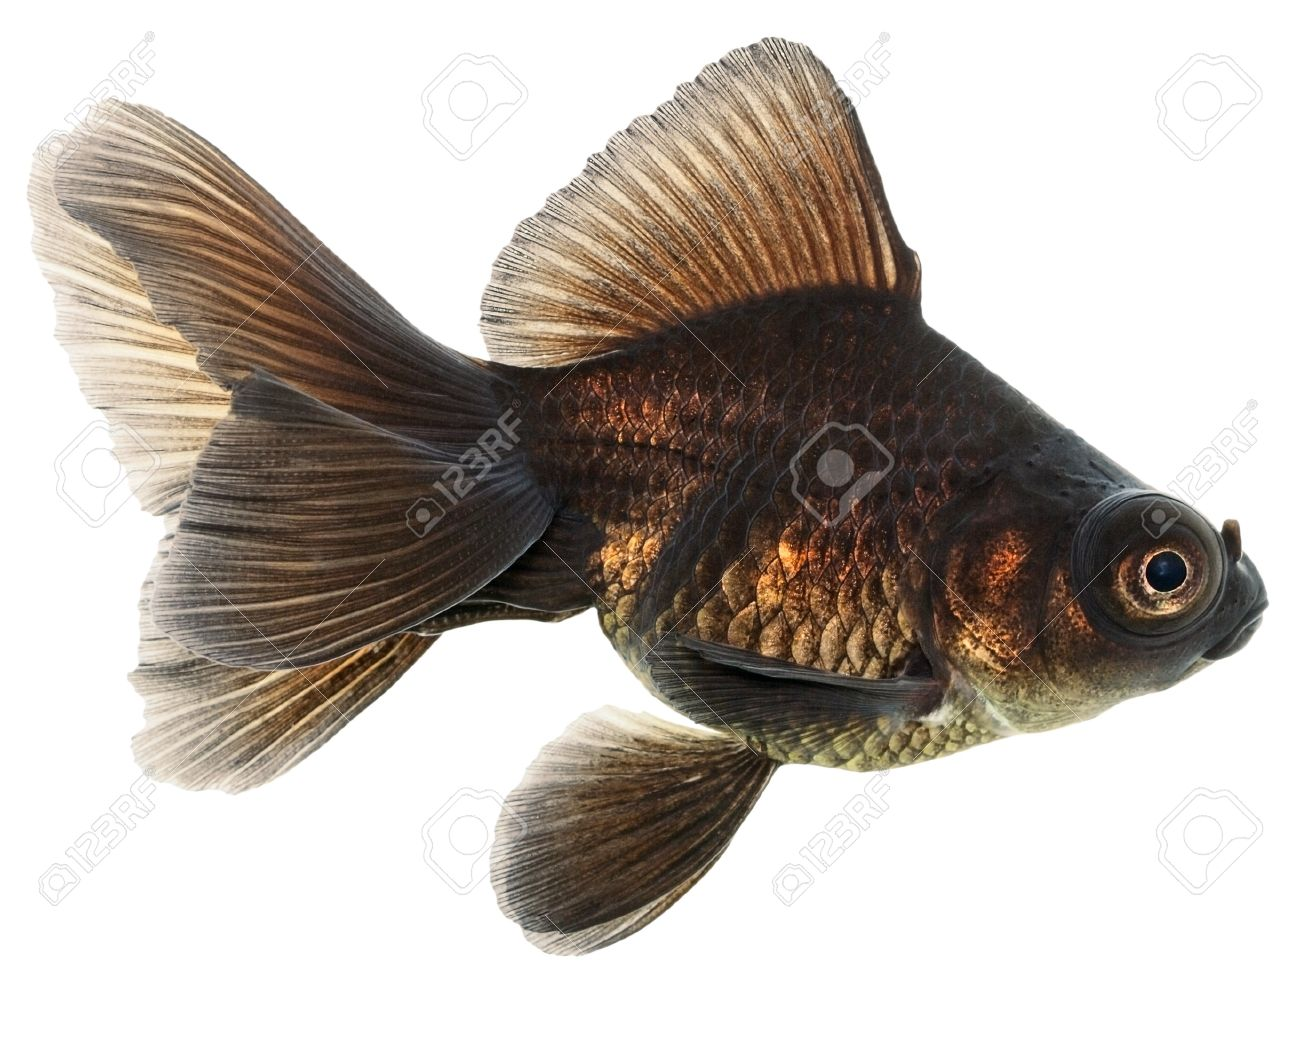 Brown Goldfish Isolated on White Background Without Shadow Stock Photo - 20163188